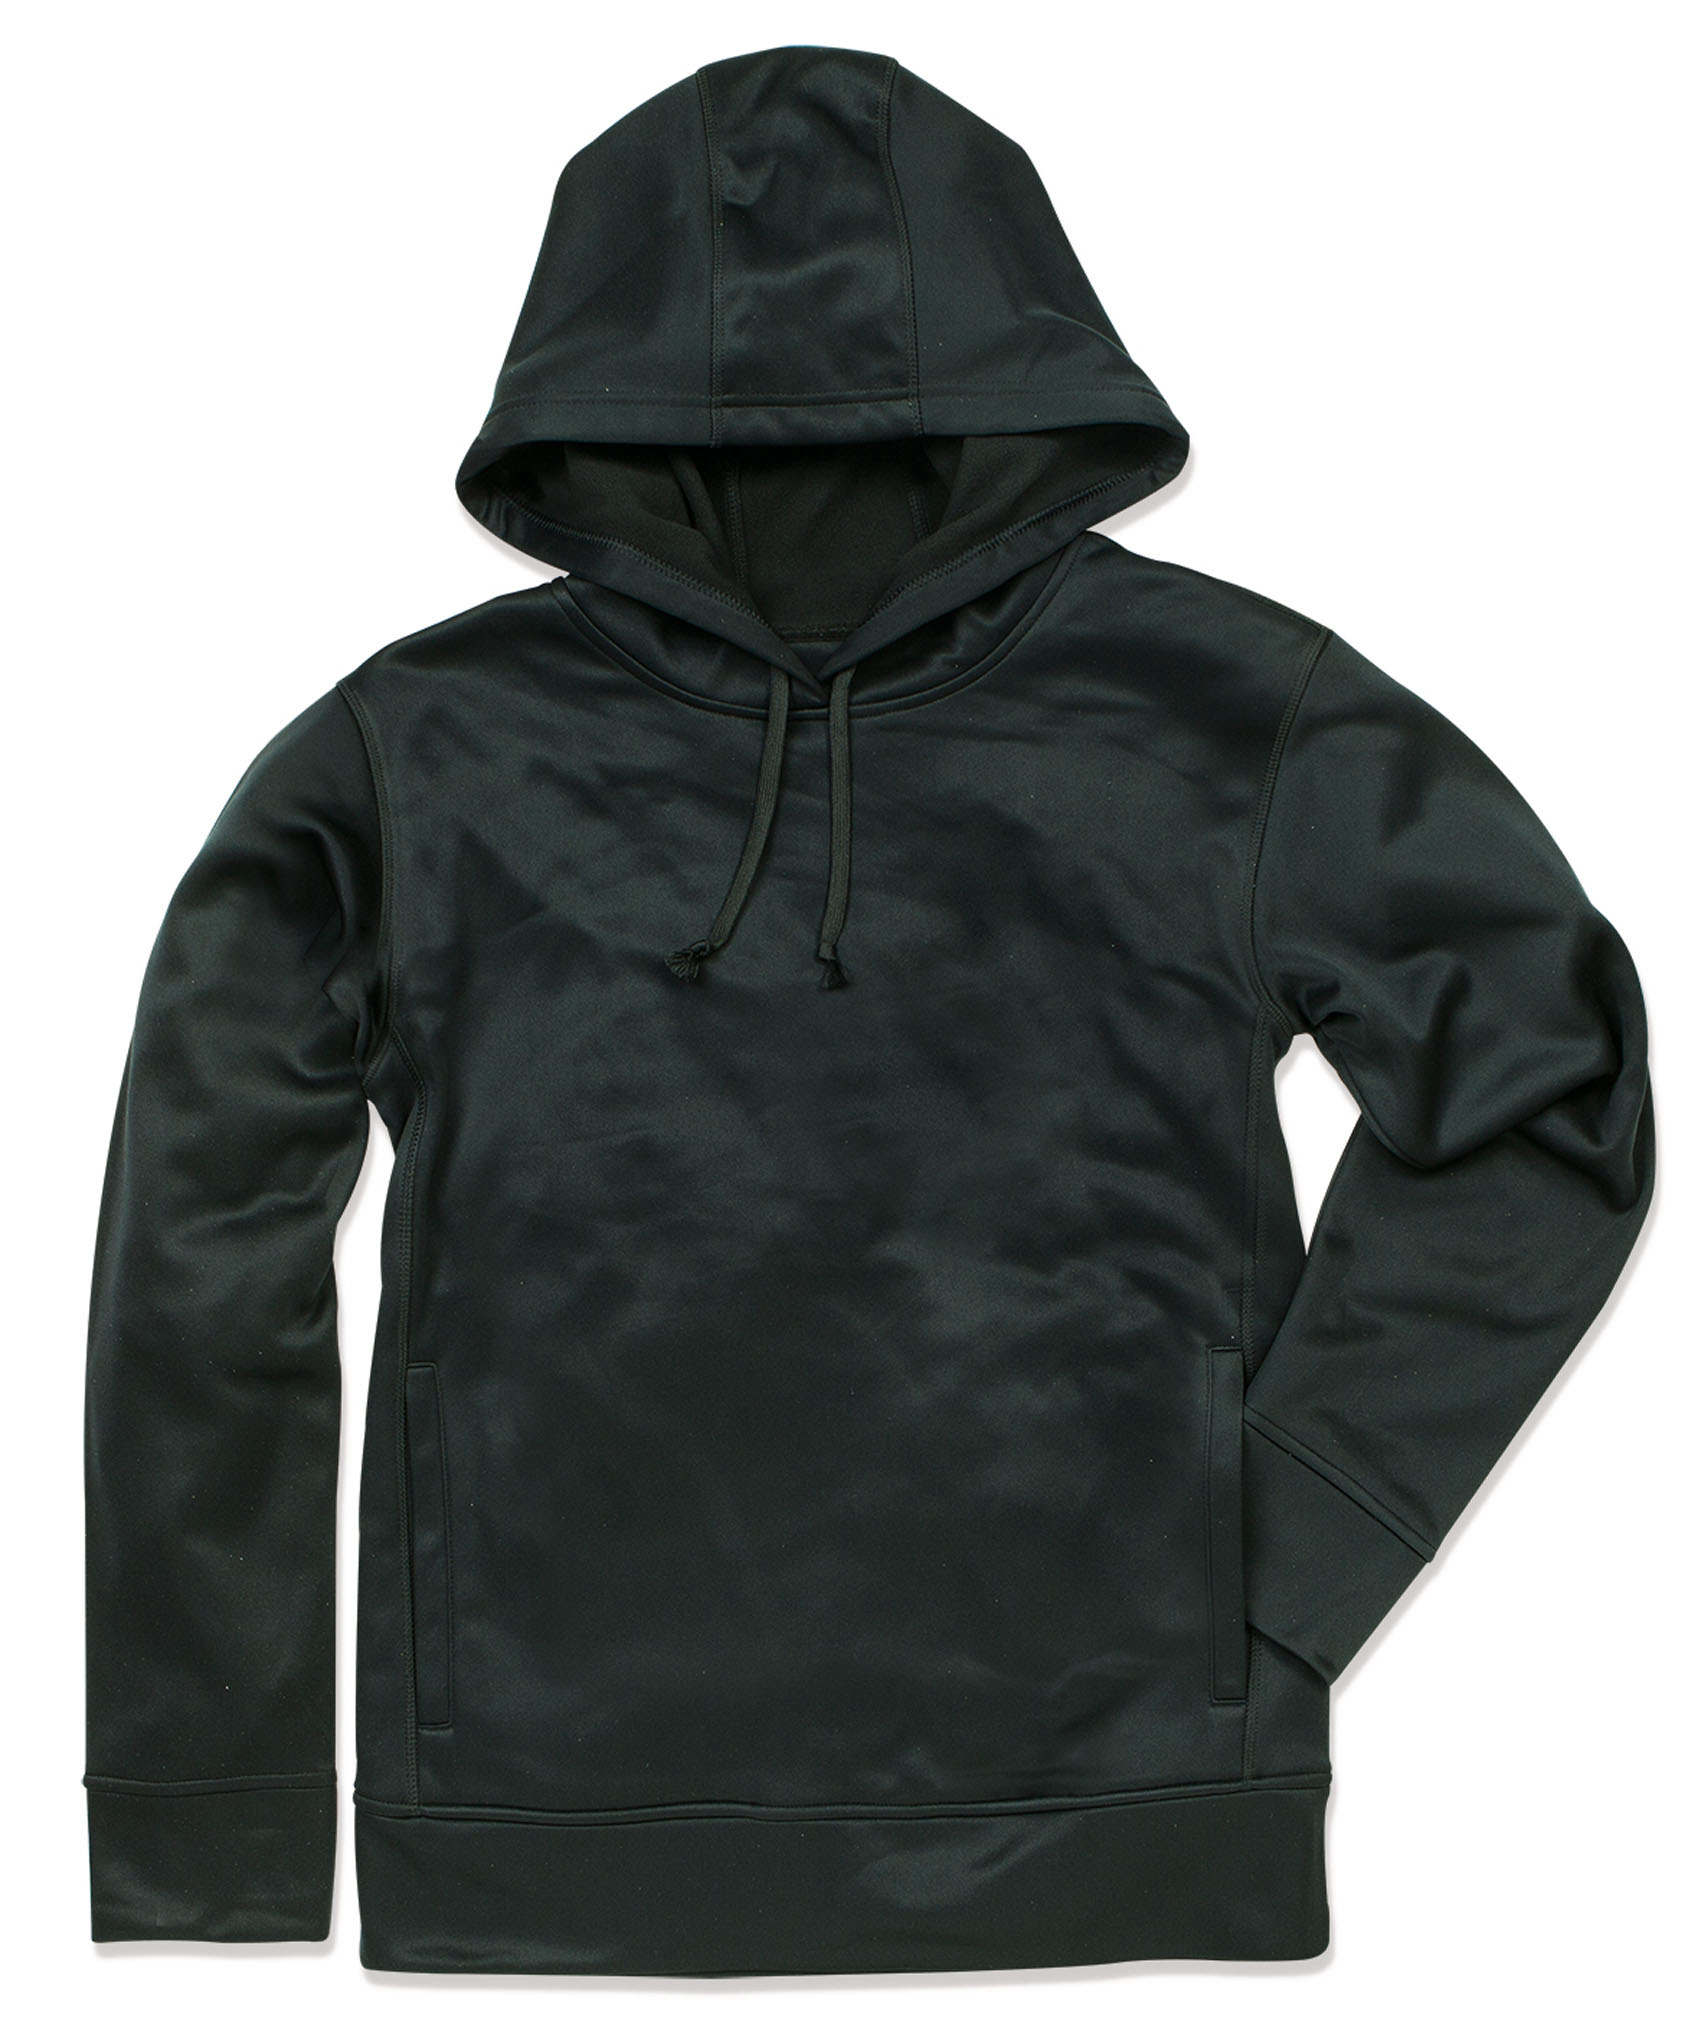 Stedman Sweater Hooded Active Bonded